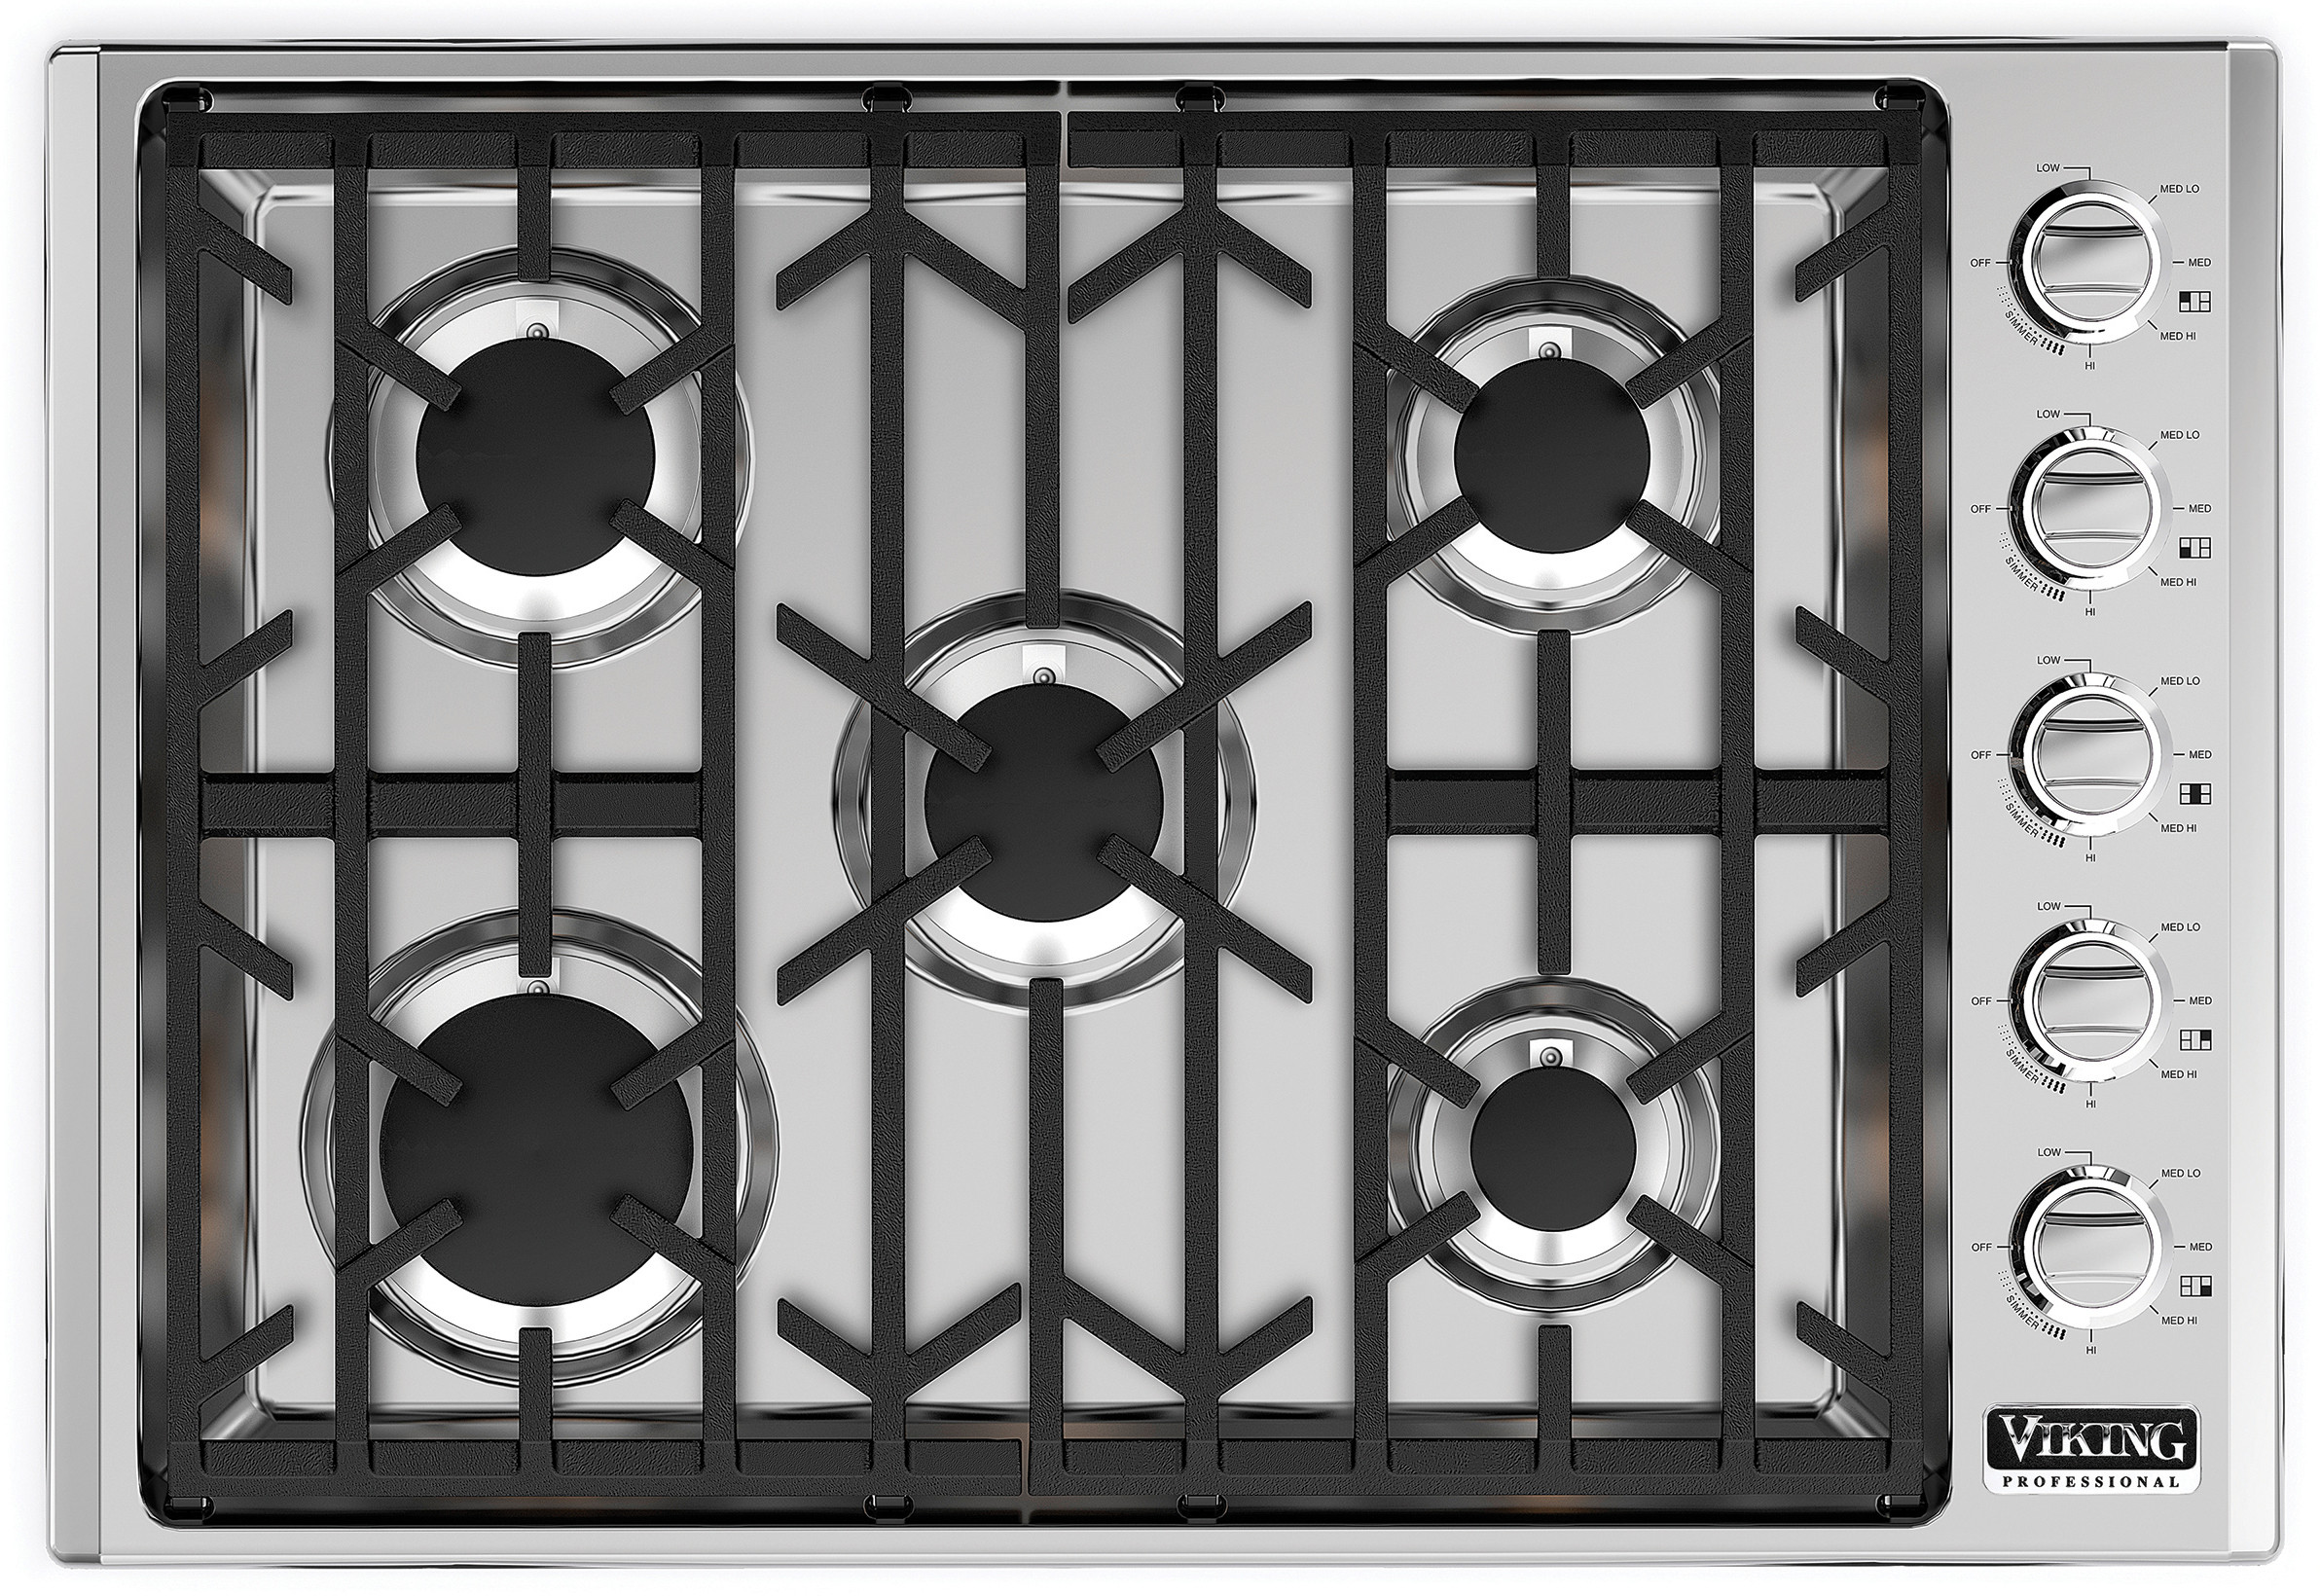 Viking Professional 5 Series Vgsu5305bssng 30 Inch Gas Cooktop